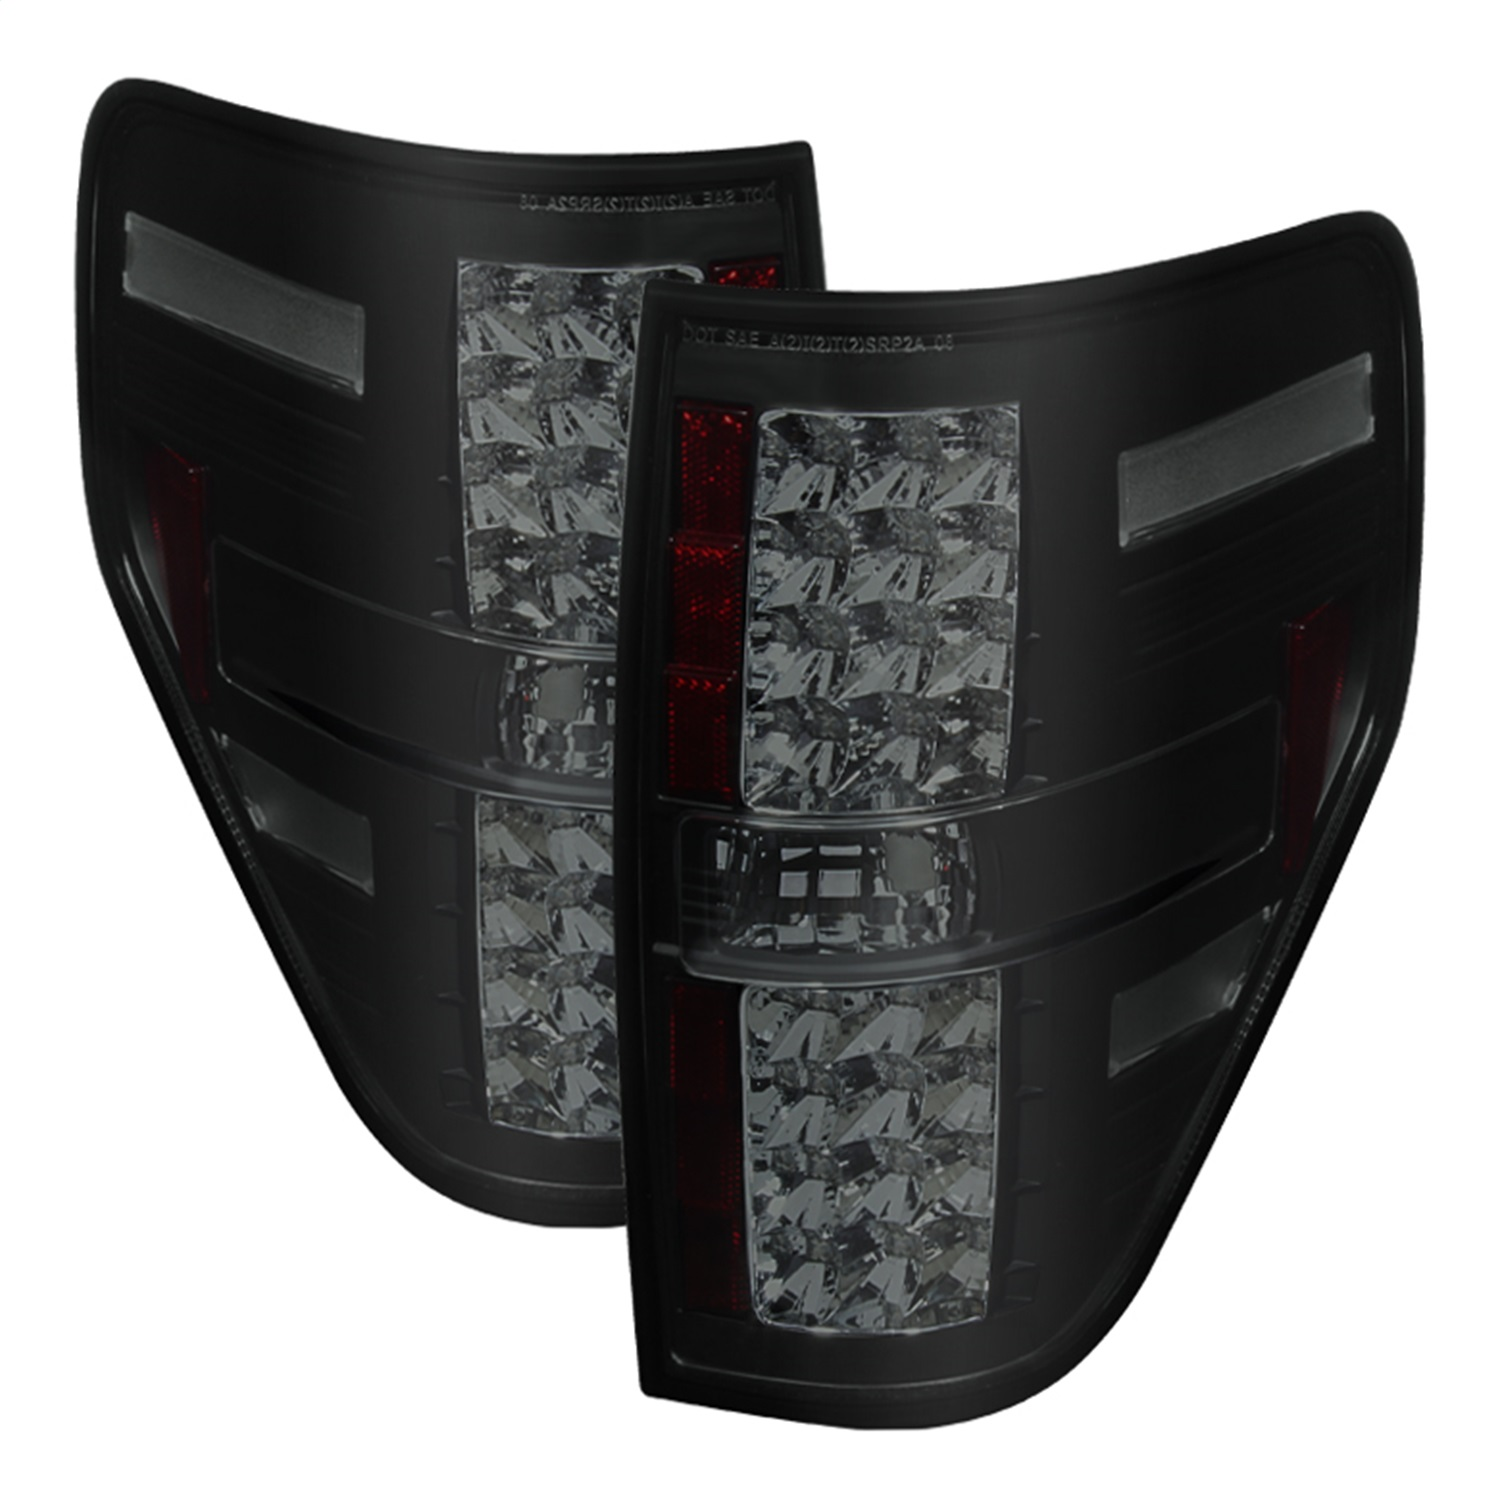 Spyder Auto 5078148 LED Tail Lights Fits 09-14 F-150